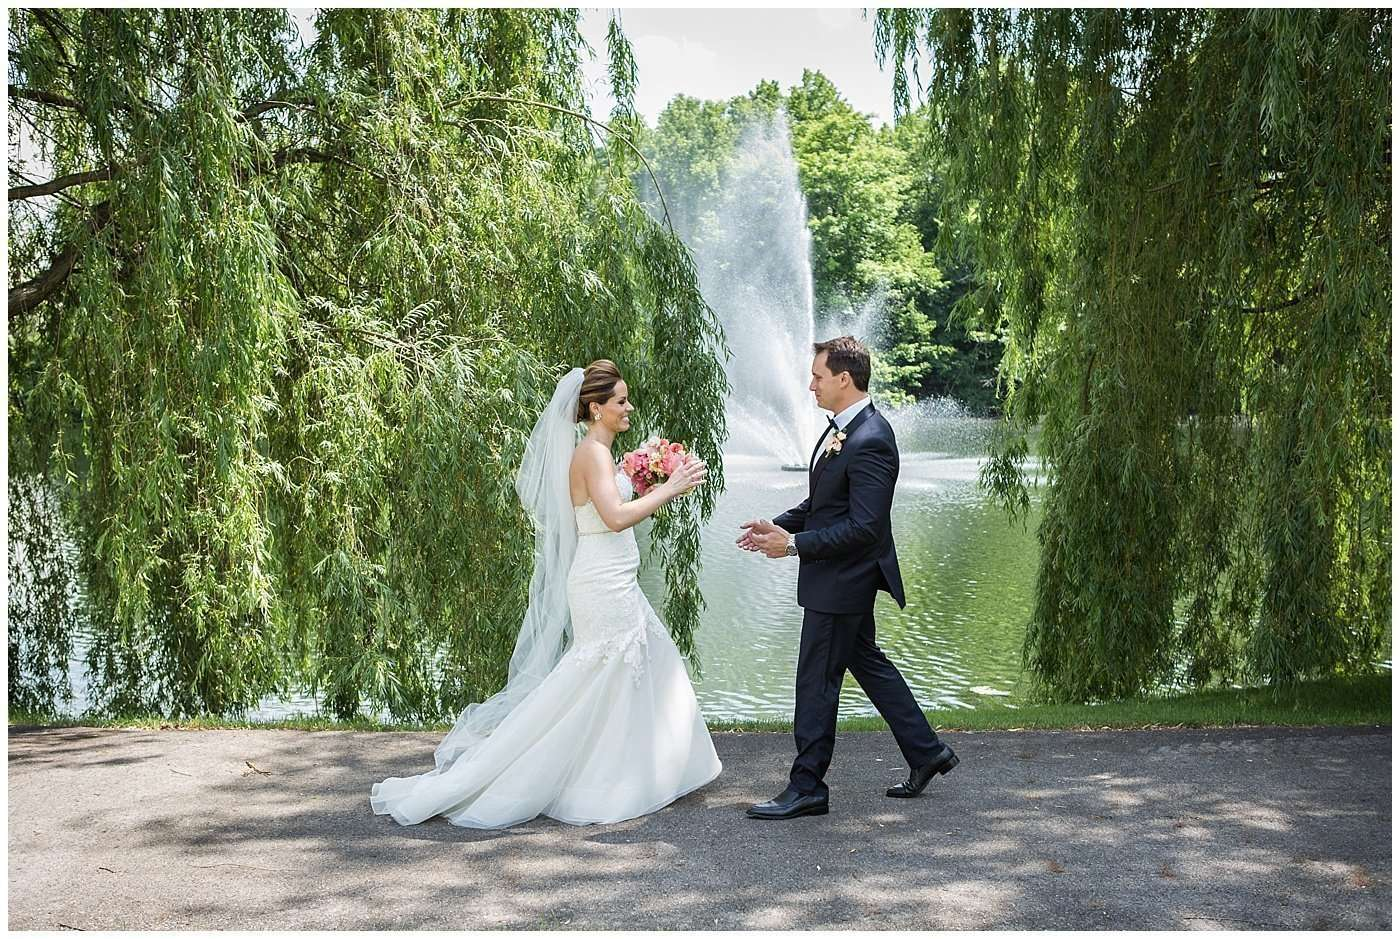 Kim & Lee | A Summer Wedding at Brookside Country Club 44